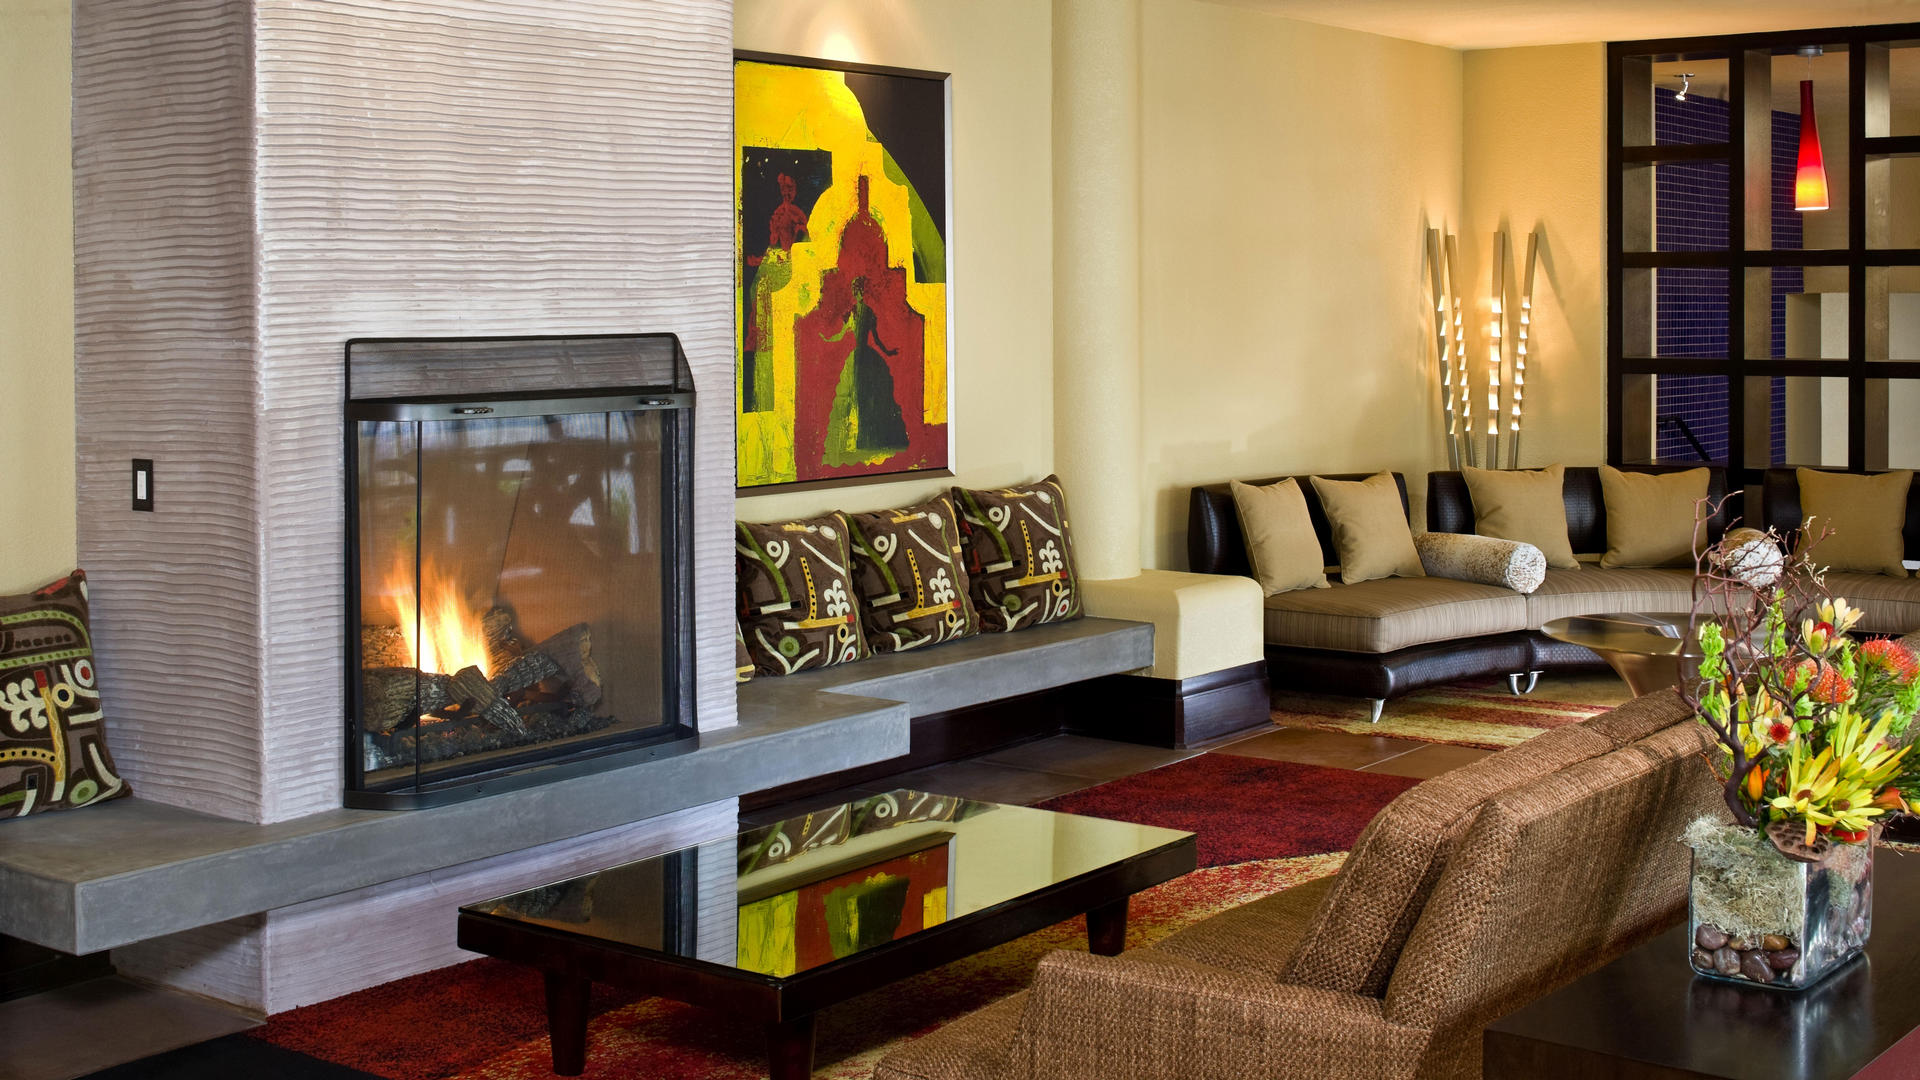 Cozy Fireplace at Chaminade Resort & Spa in Santa Cruz